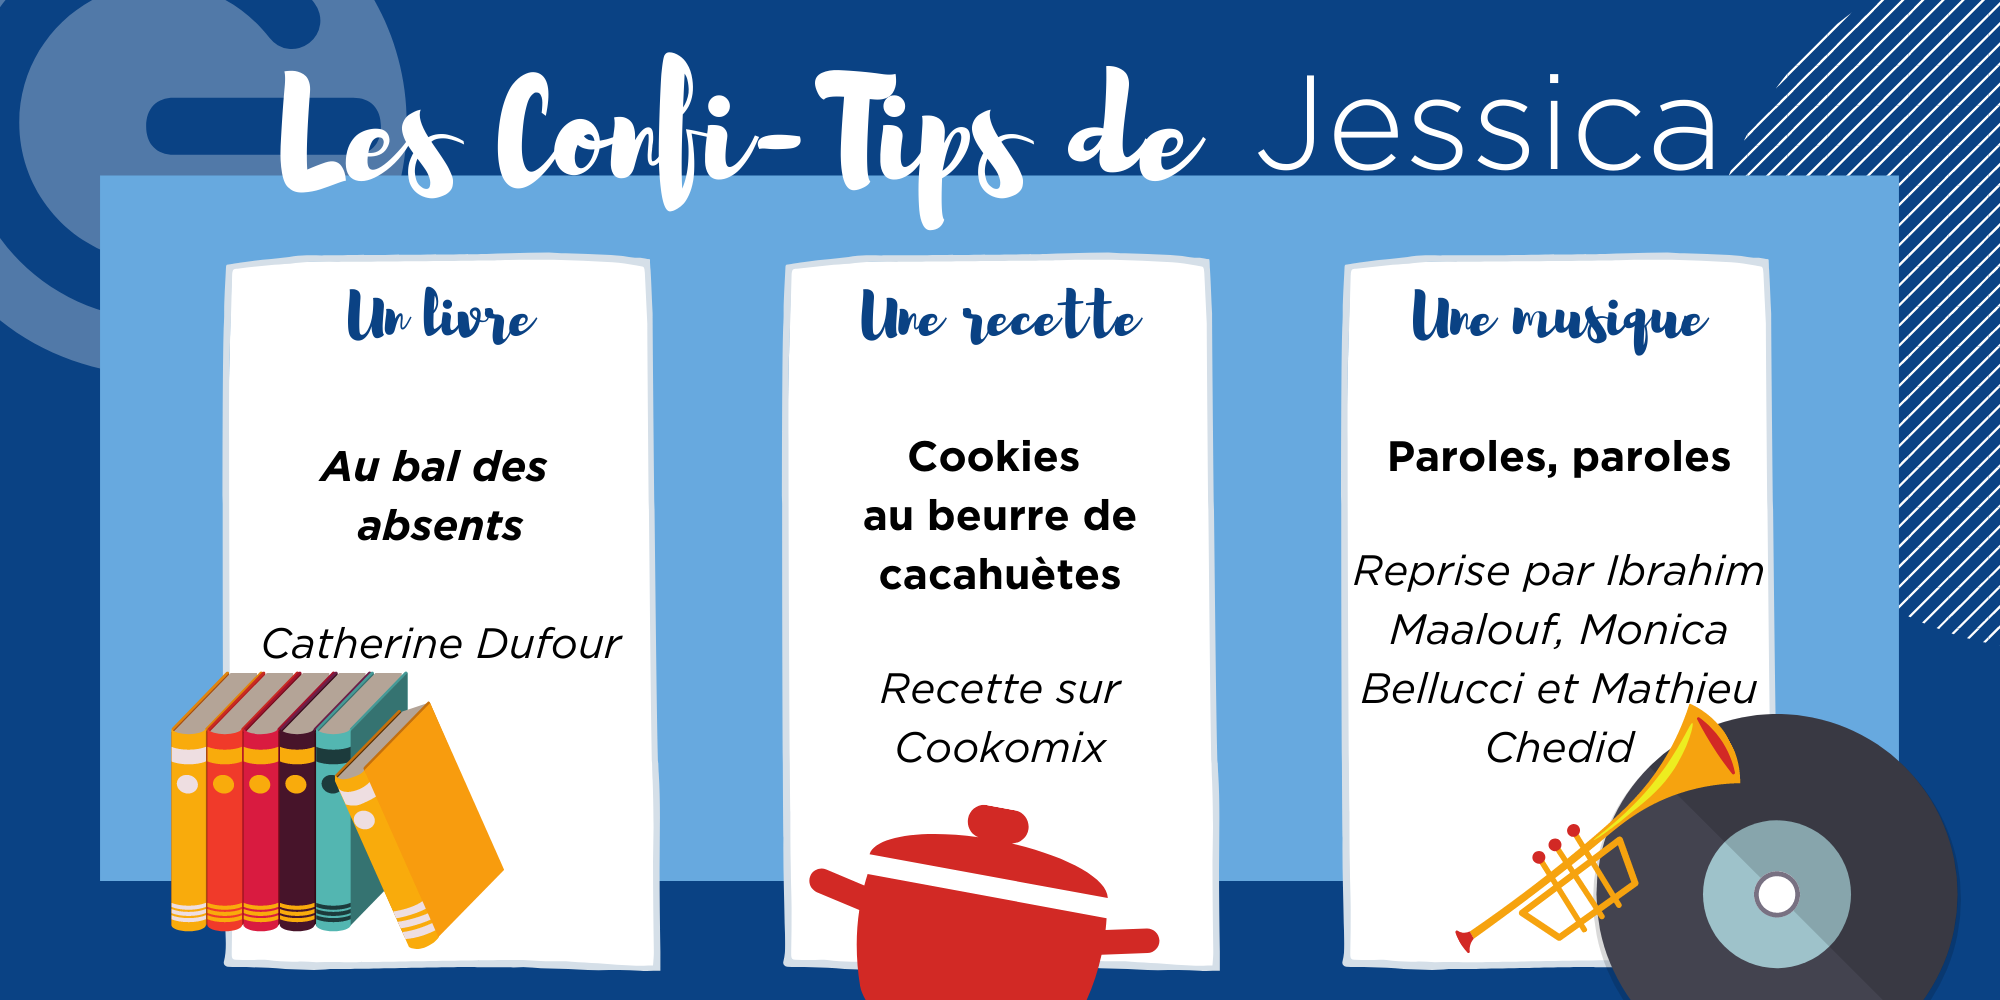 accompagner nos clients - confi-tips de Jessica